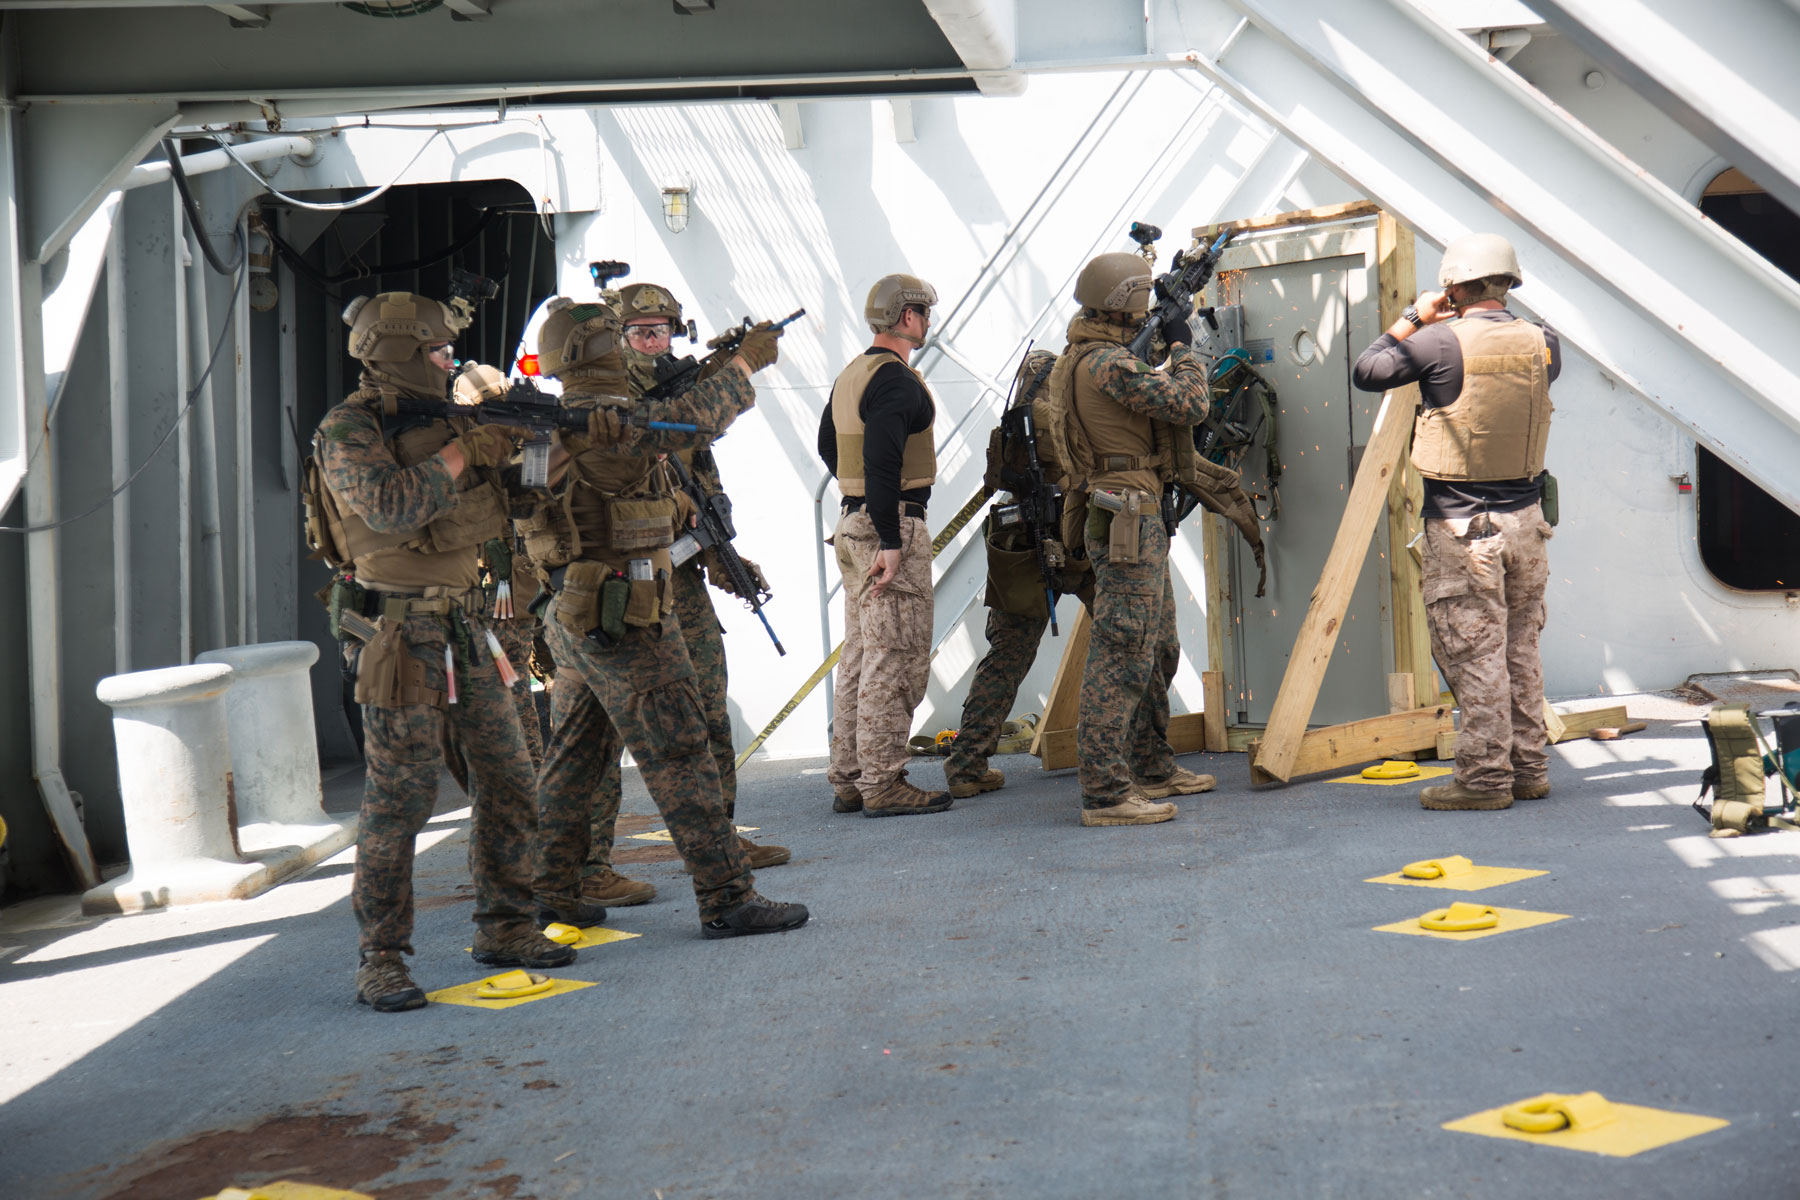 U.S. Marines with the Maritime Raid Force (MRF) operate a circular saw to rehearse breaching techniques.